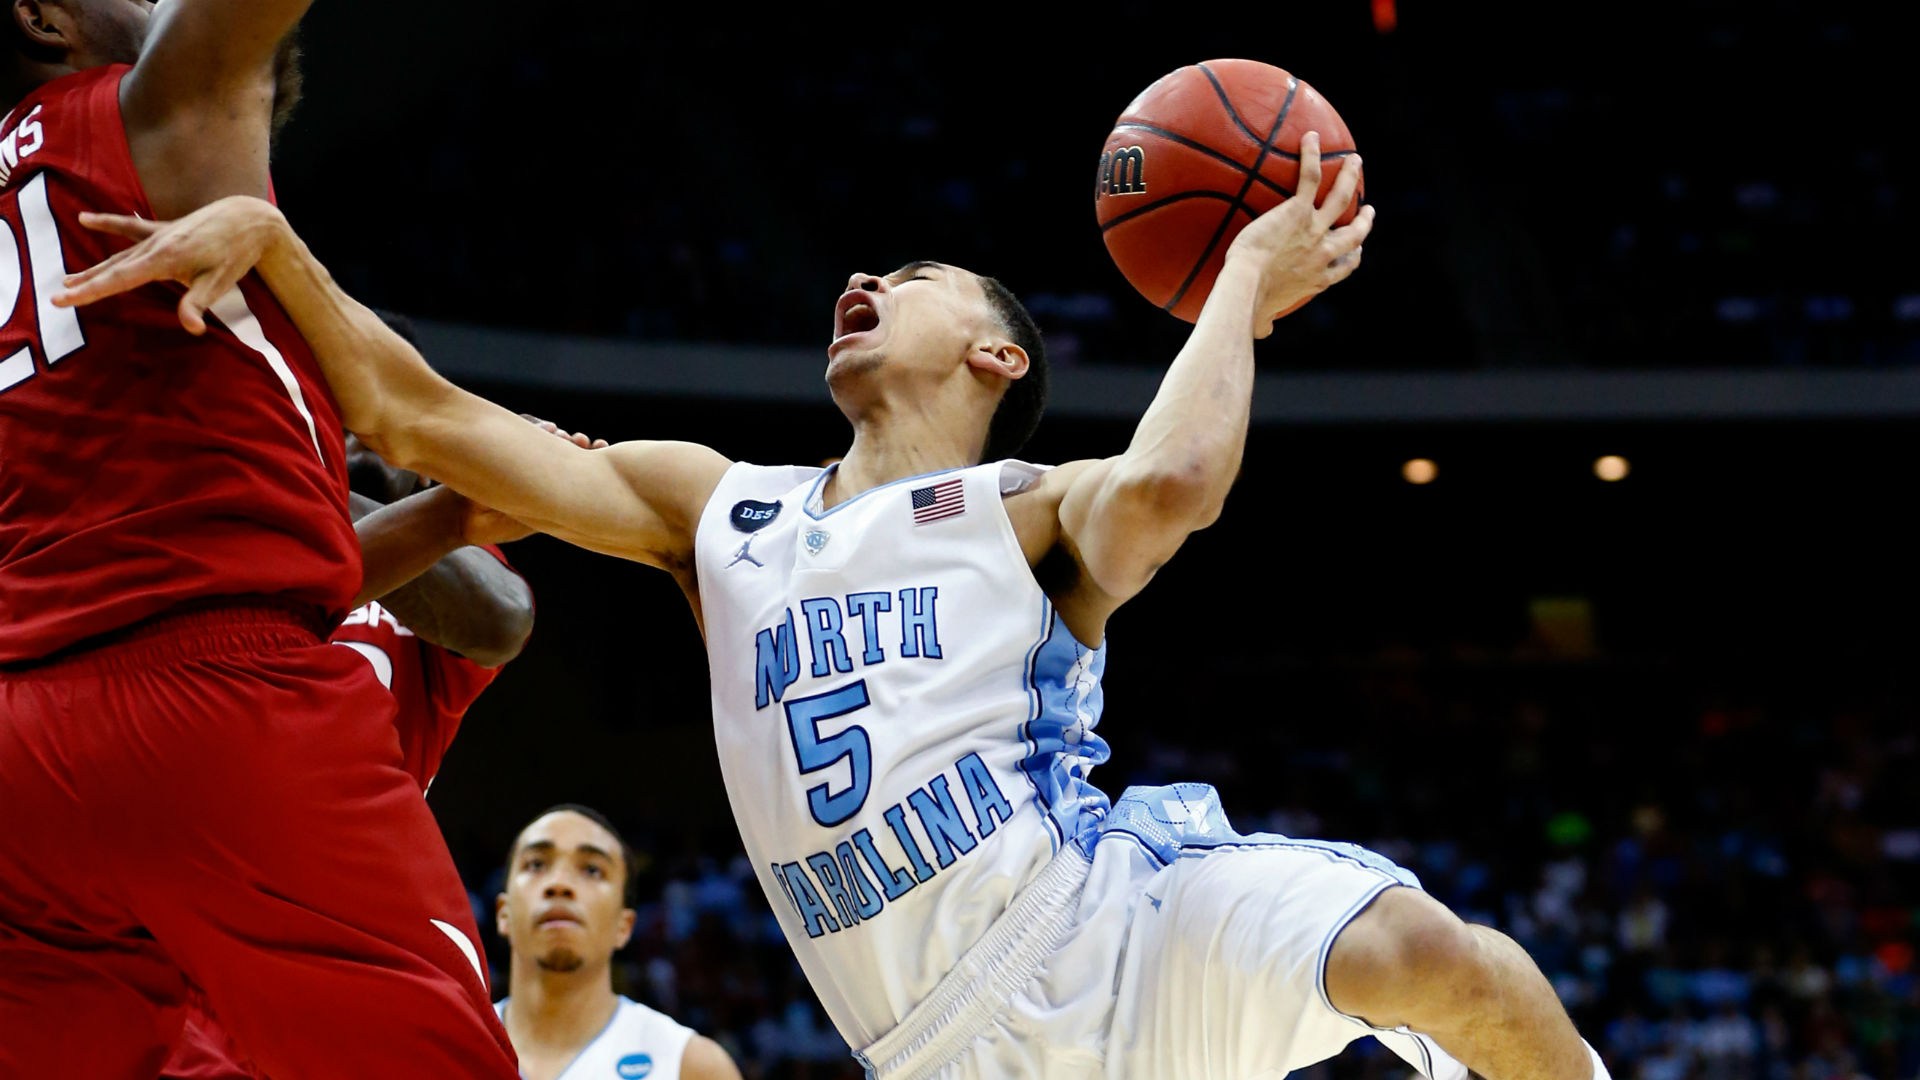 UNC's Marcus Paige has ankle surgery; played with bone spurs last season